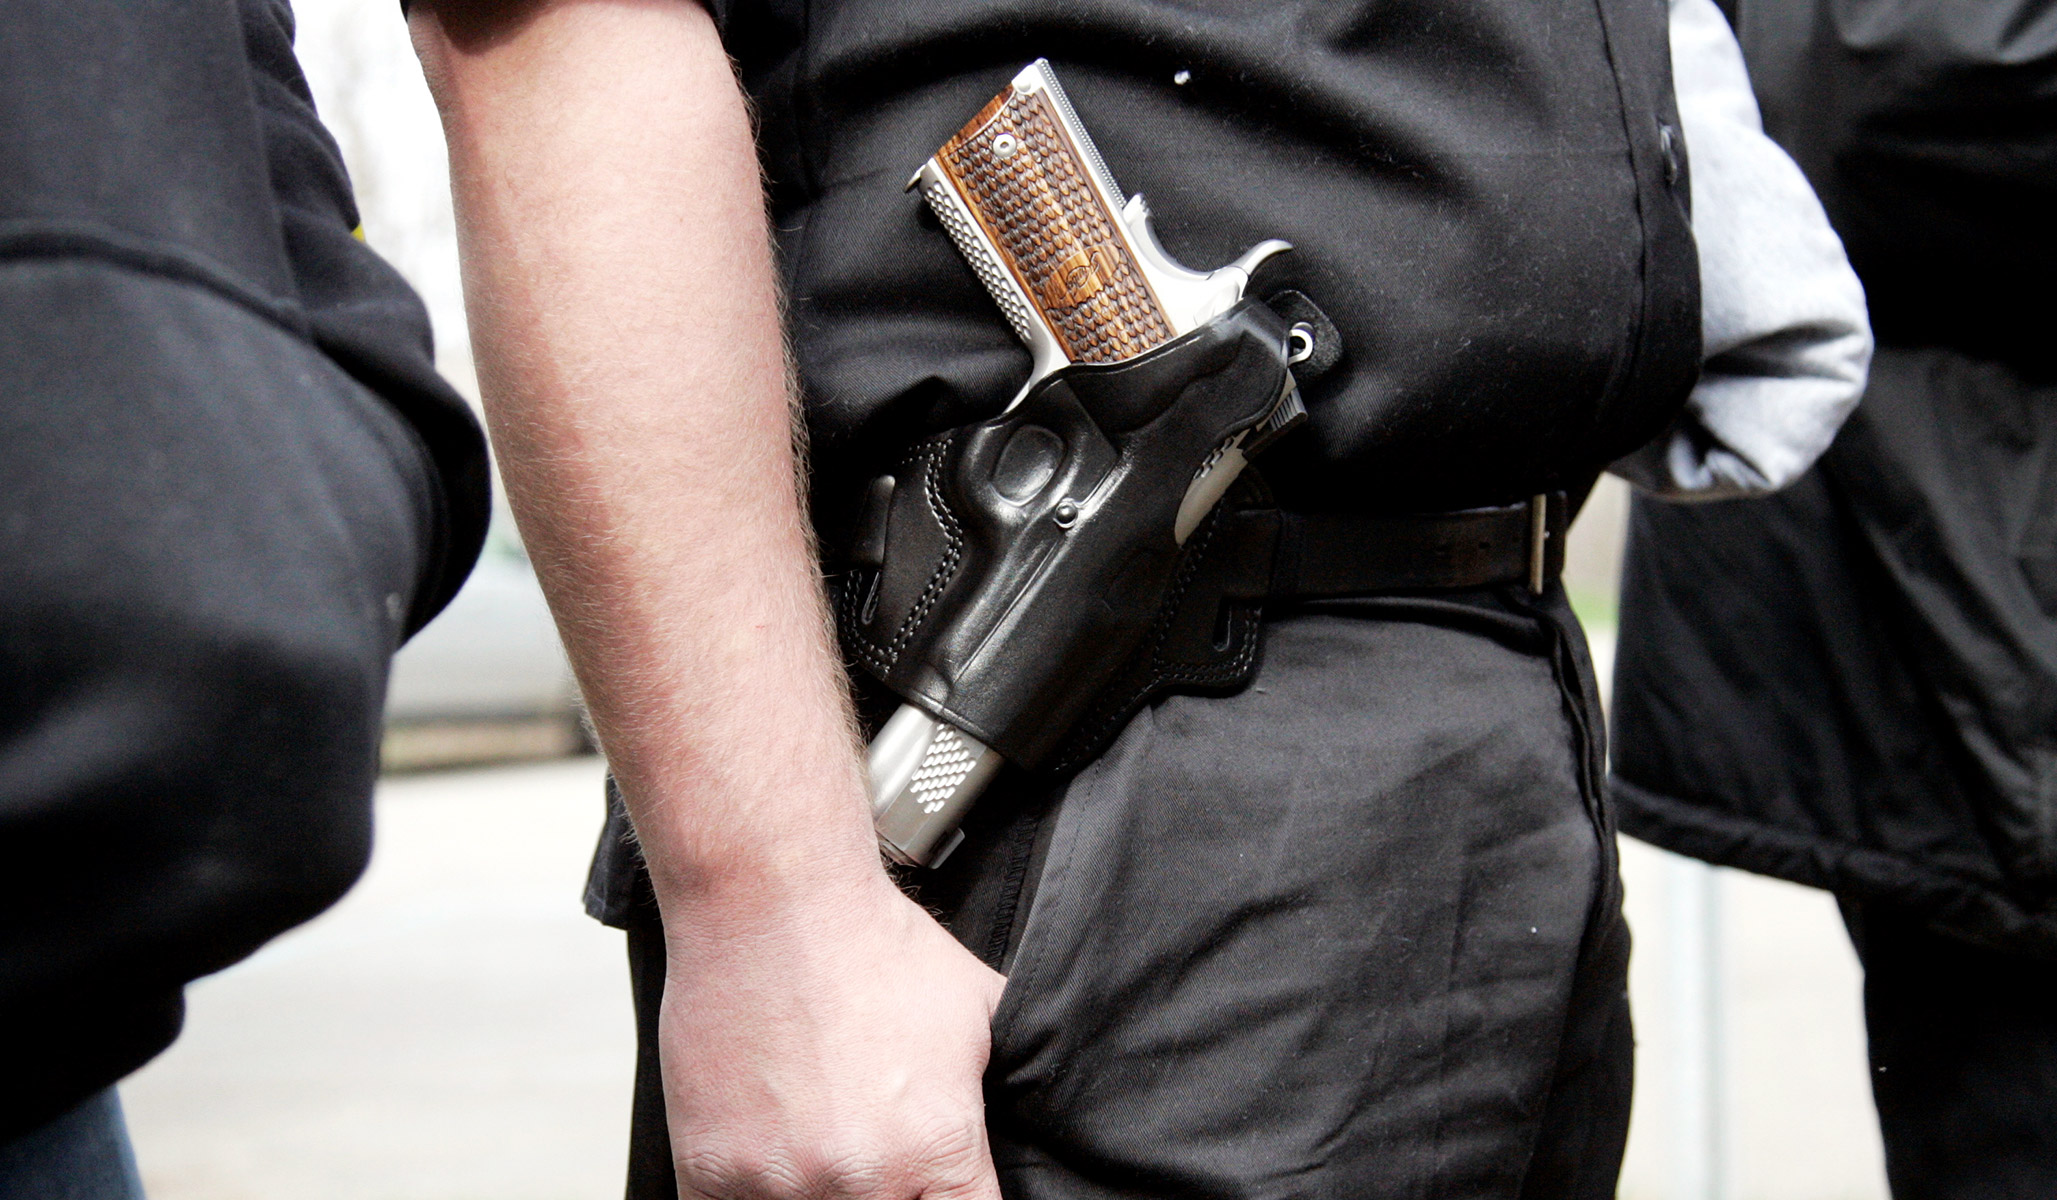 Openly Carry Case Appeals Court Affirms Constitutional Right